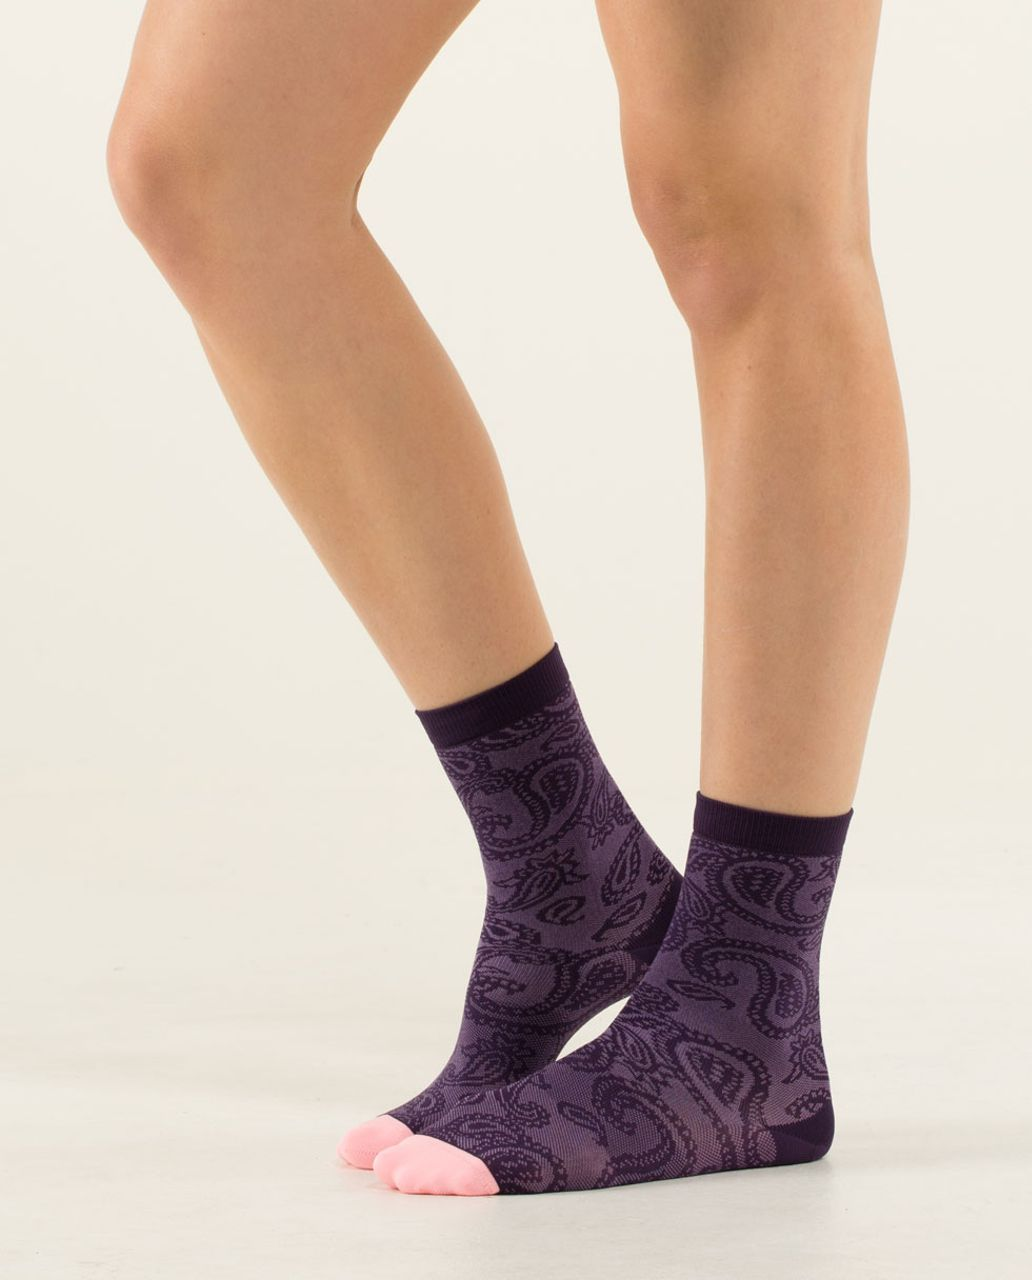 Lululemon Run For Fun Sock - Paisley Mesh Deep Zinfandel